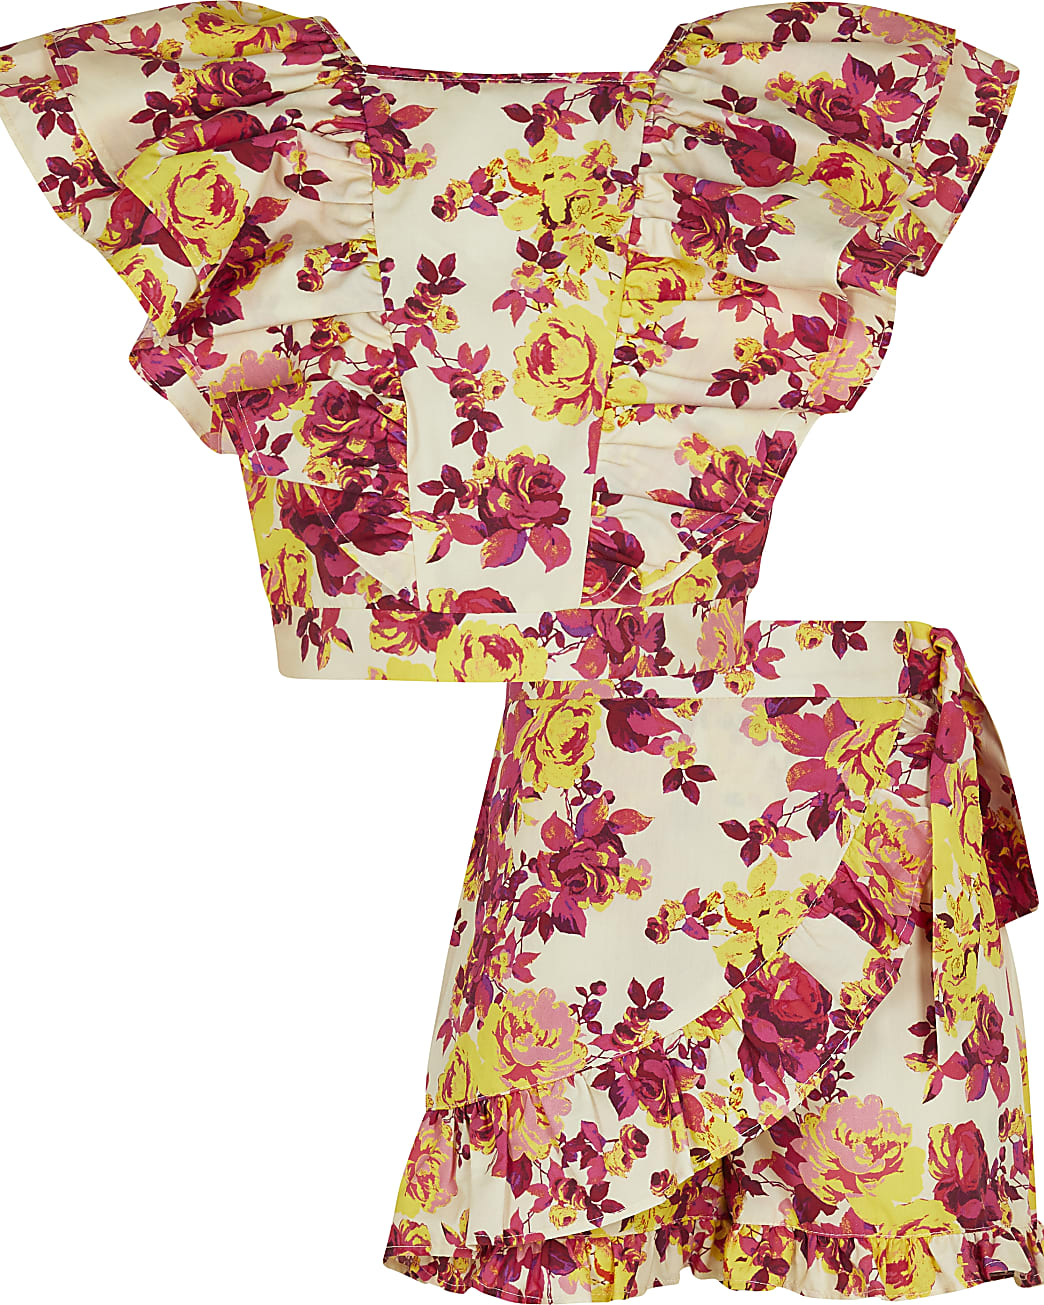 Age 13+ girls white floral top and shorts set